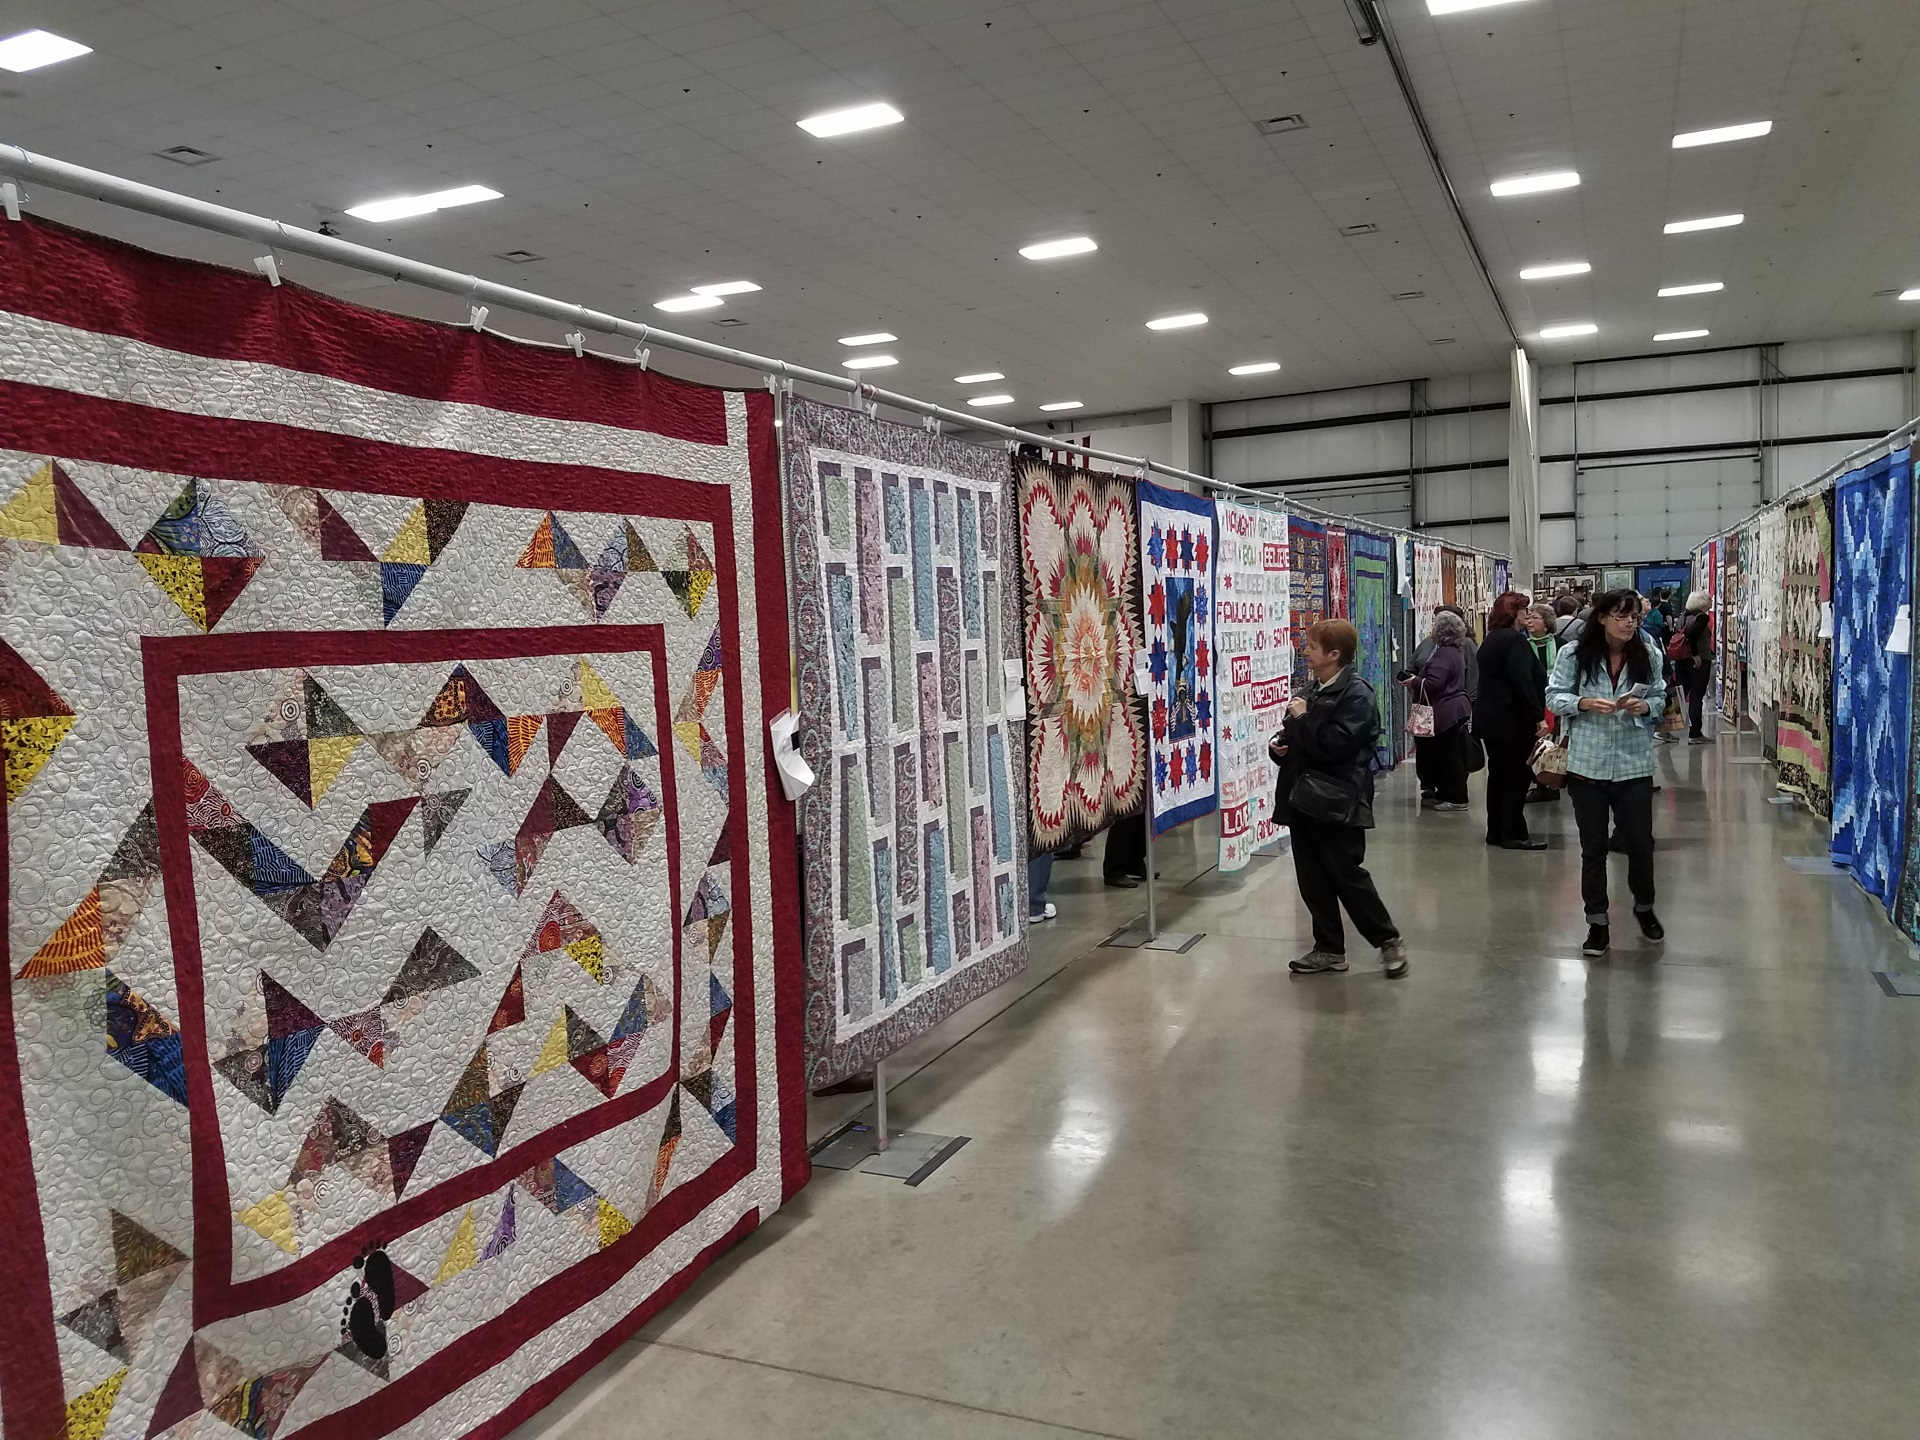 Photo of the first Willamette Valley Quilt Show in 2018, showing quilts hanging on display in the Linn County Fairgrounds exhibit hall.